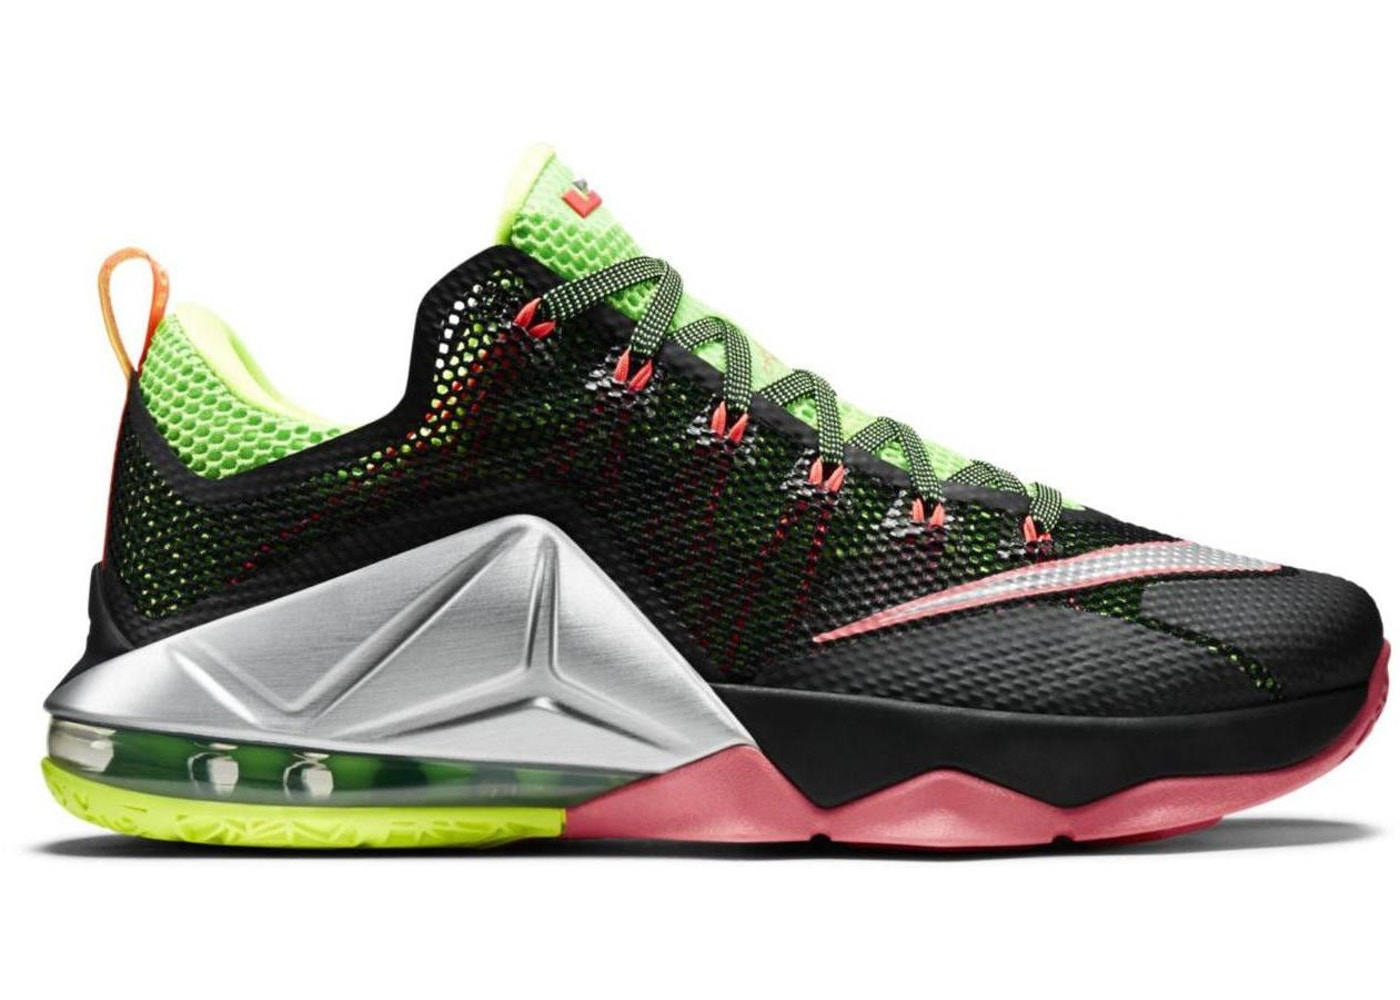 d4b5bb0f789a LeBron 12 Low Remix - 724557-003